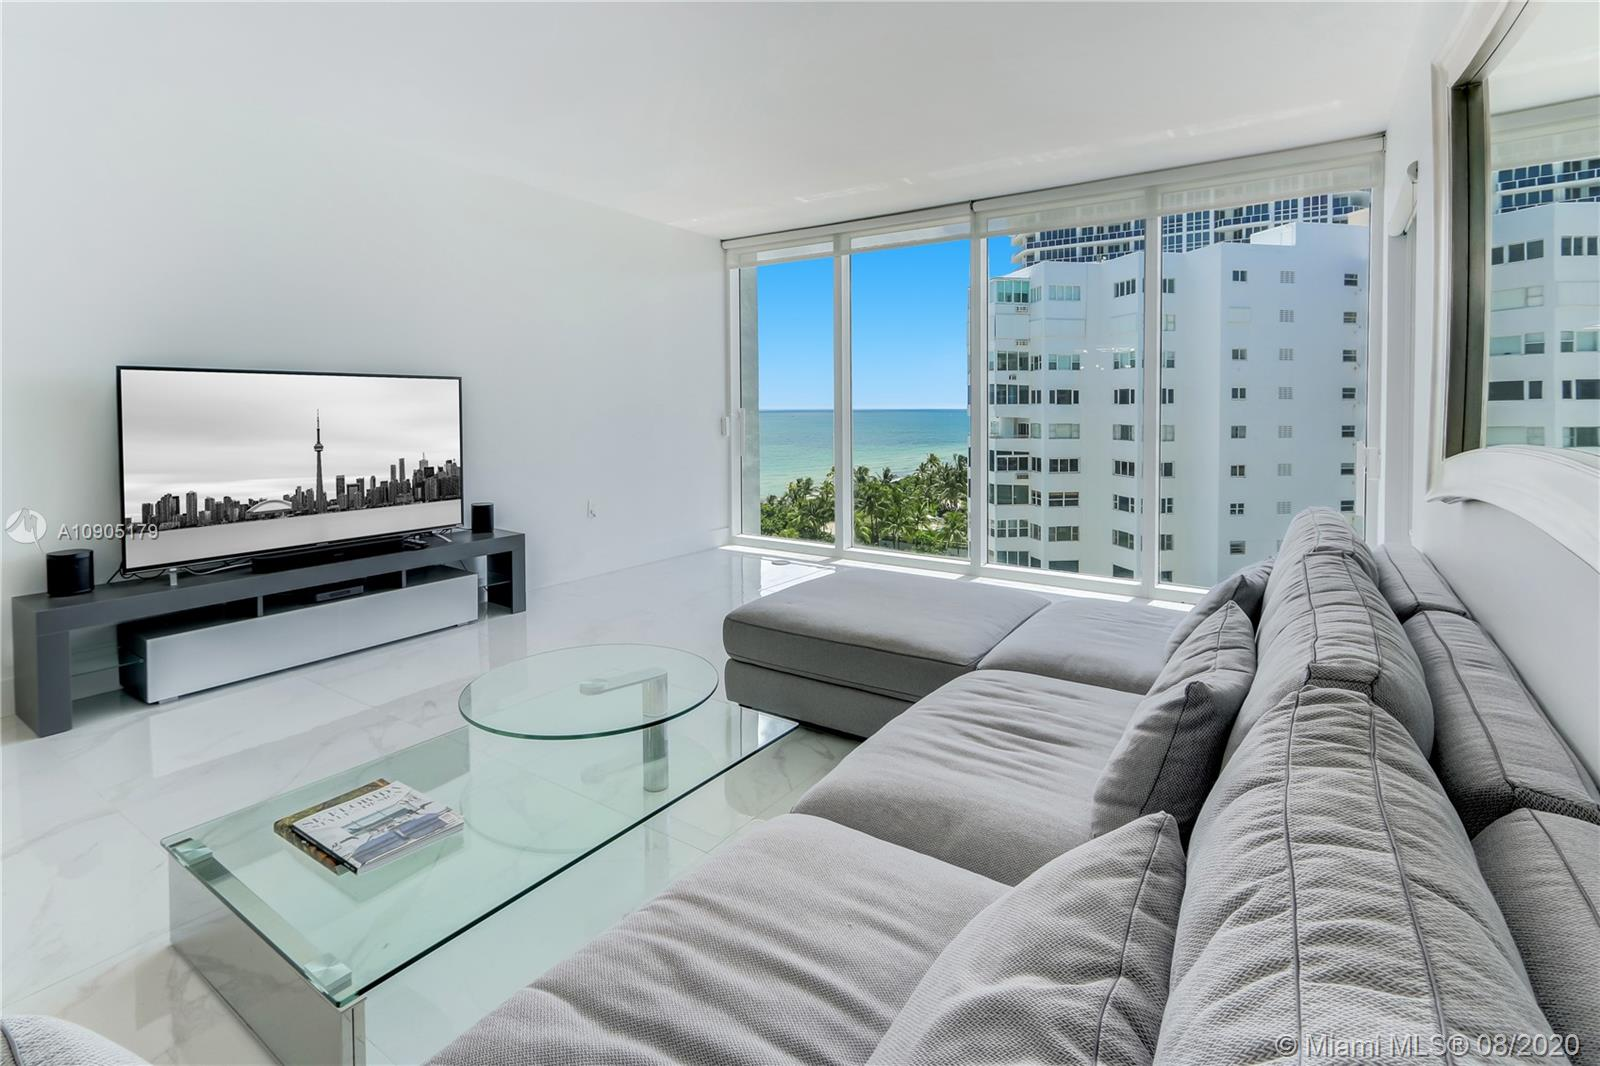 10275 Collins Ave # 916, Bal Harbour FL 33154